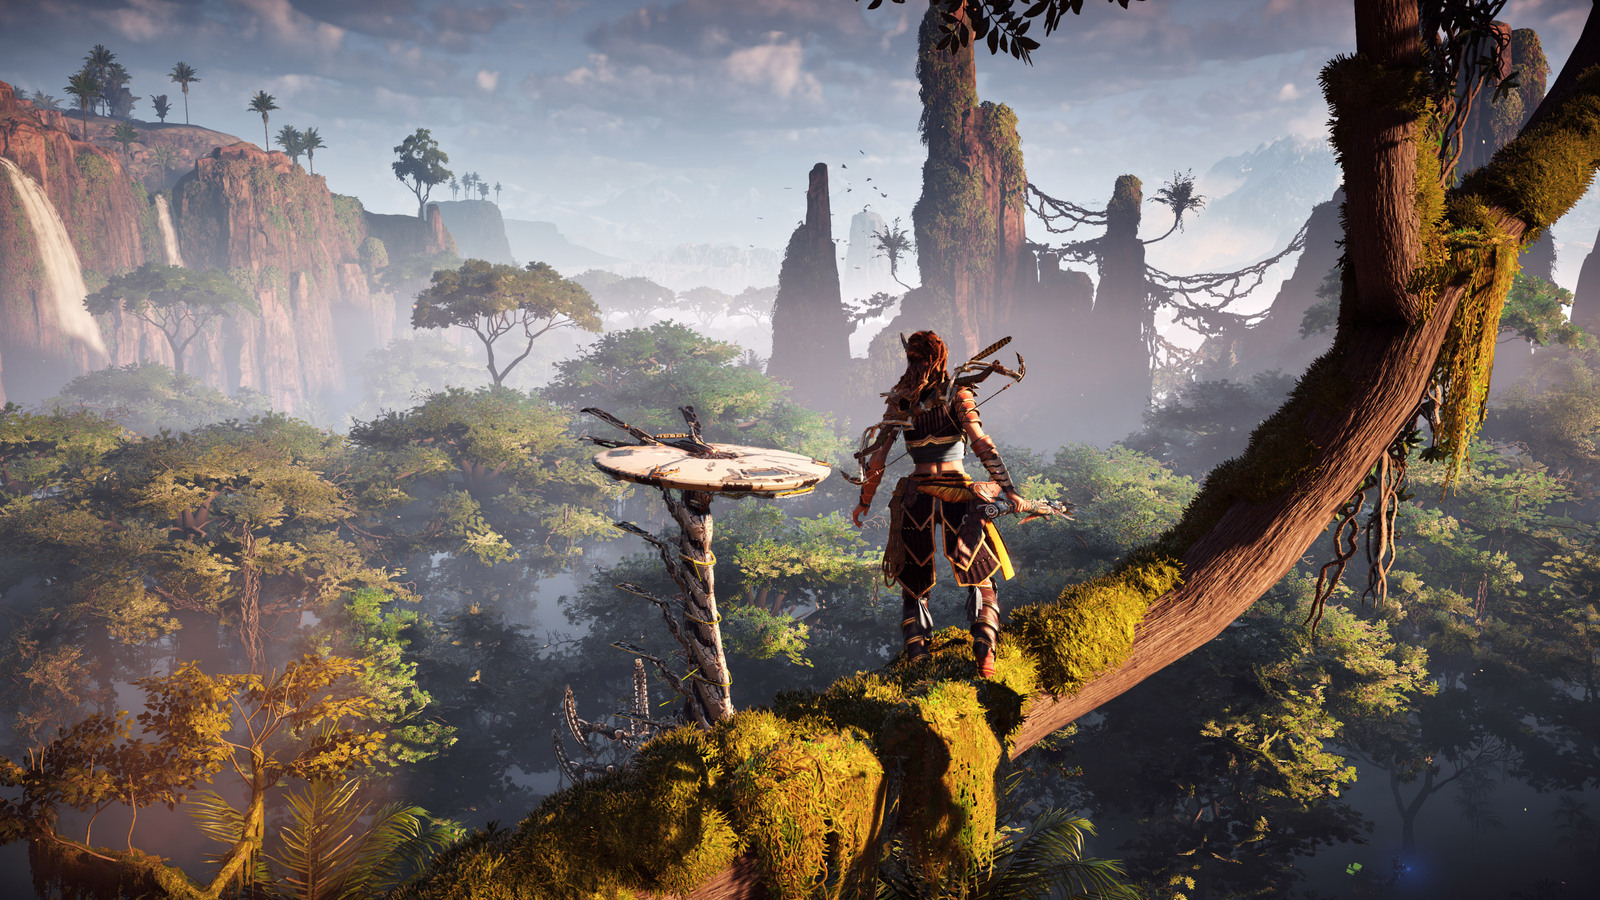 1600x900 horizon zero dawn 4k game 1600x900 resolution hd 4k